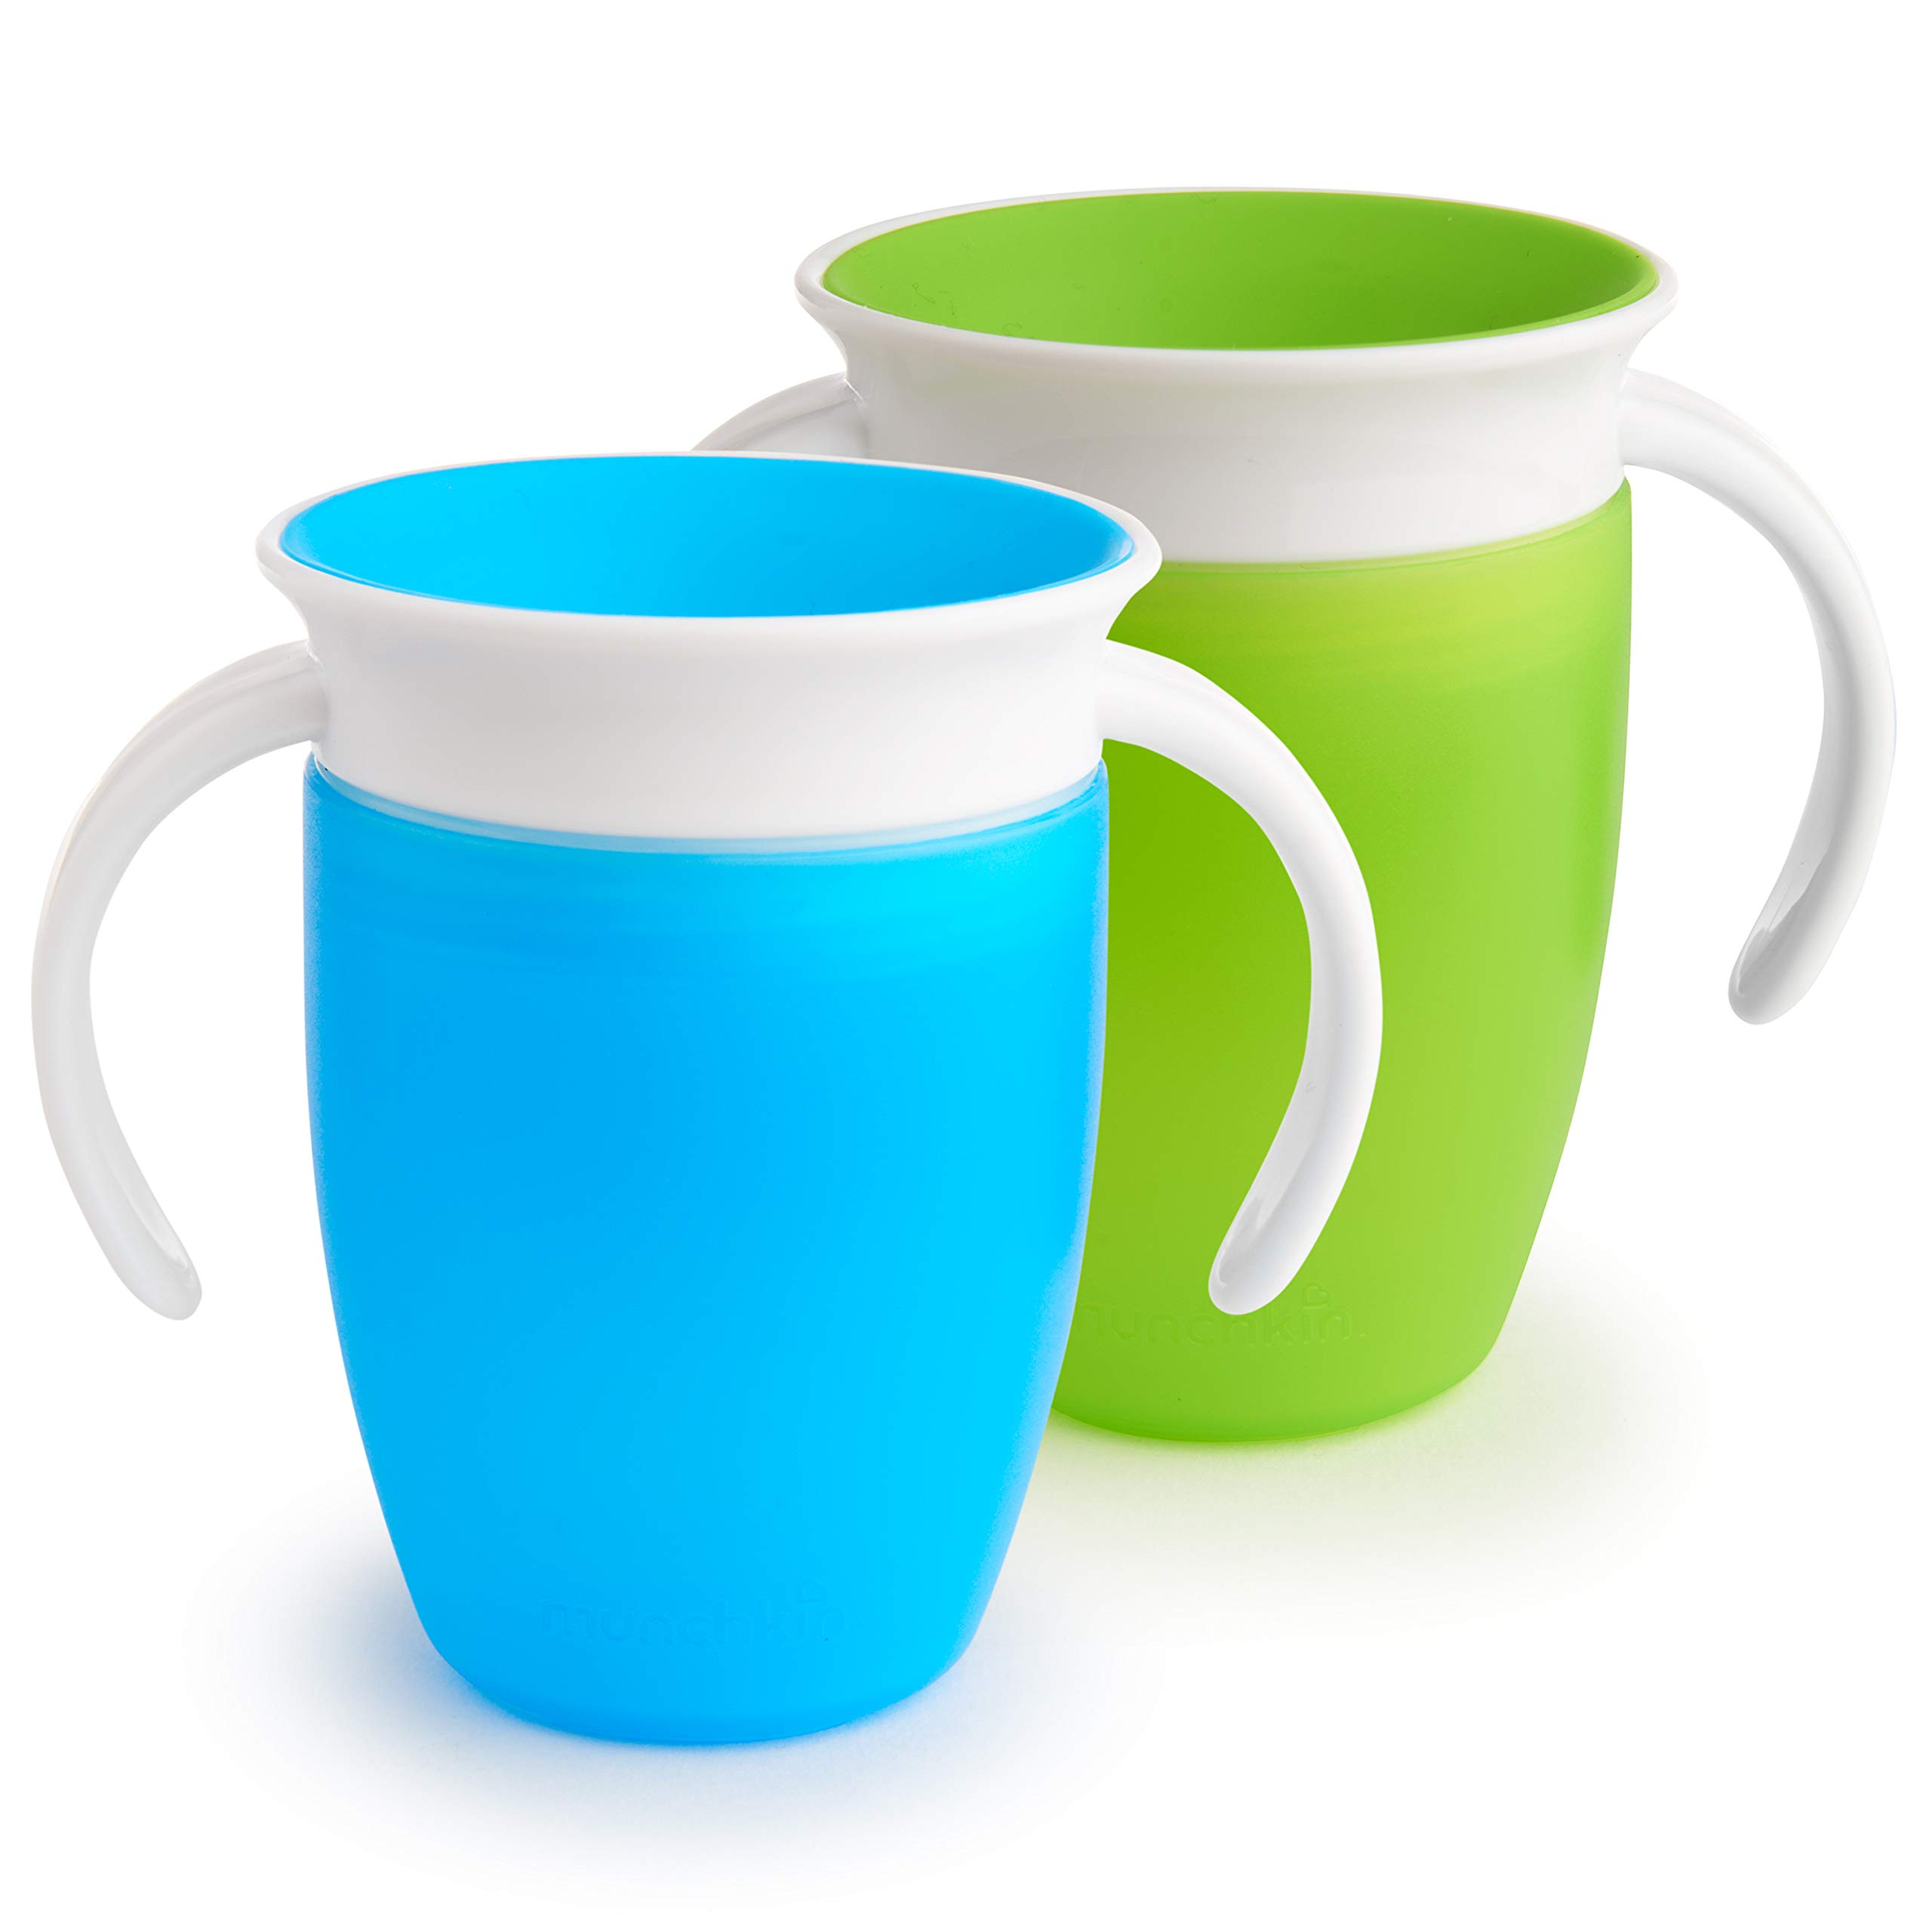 Munchkin Miracle 360 Trainer Cup, Green/Blue, 7 Ounce, 2 Count by Munchkin